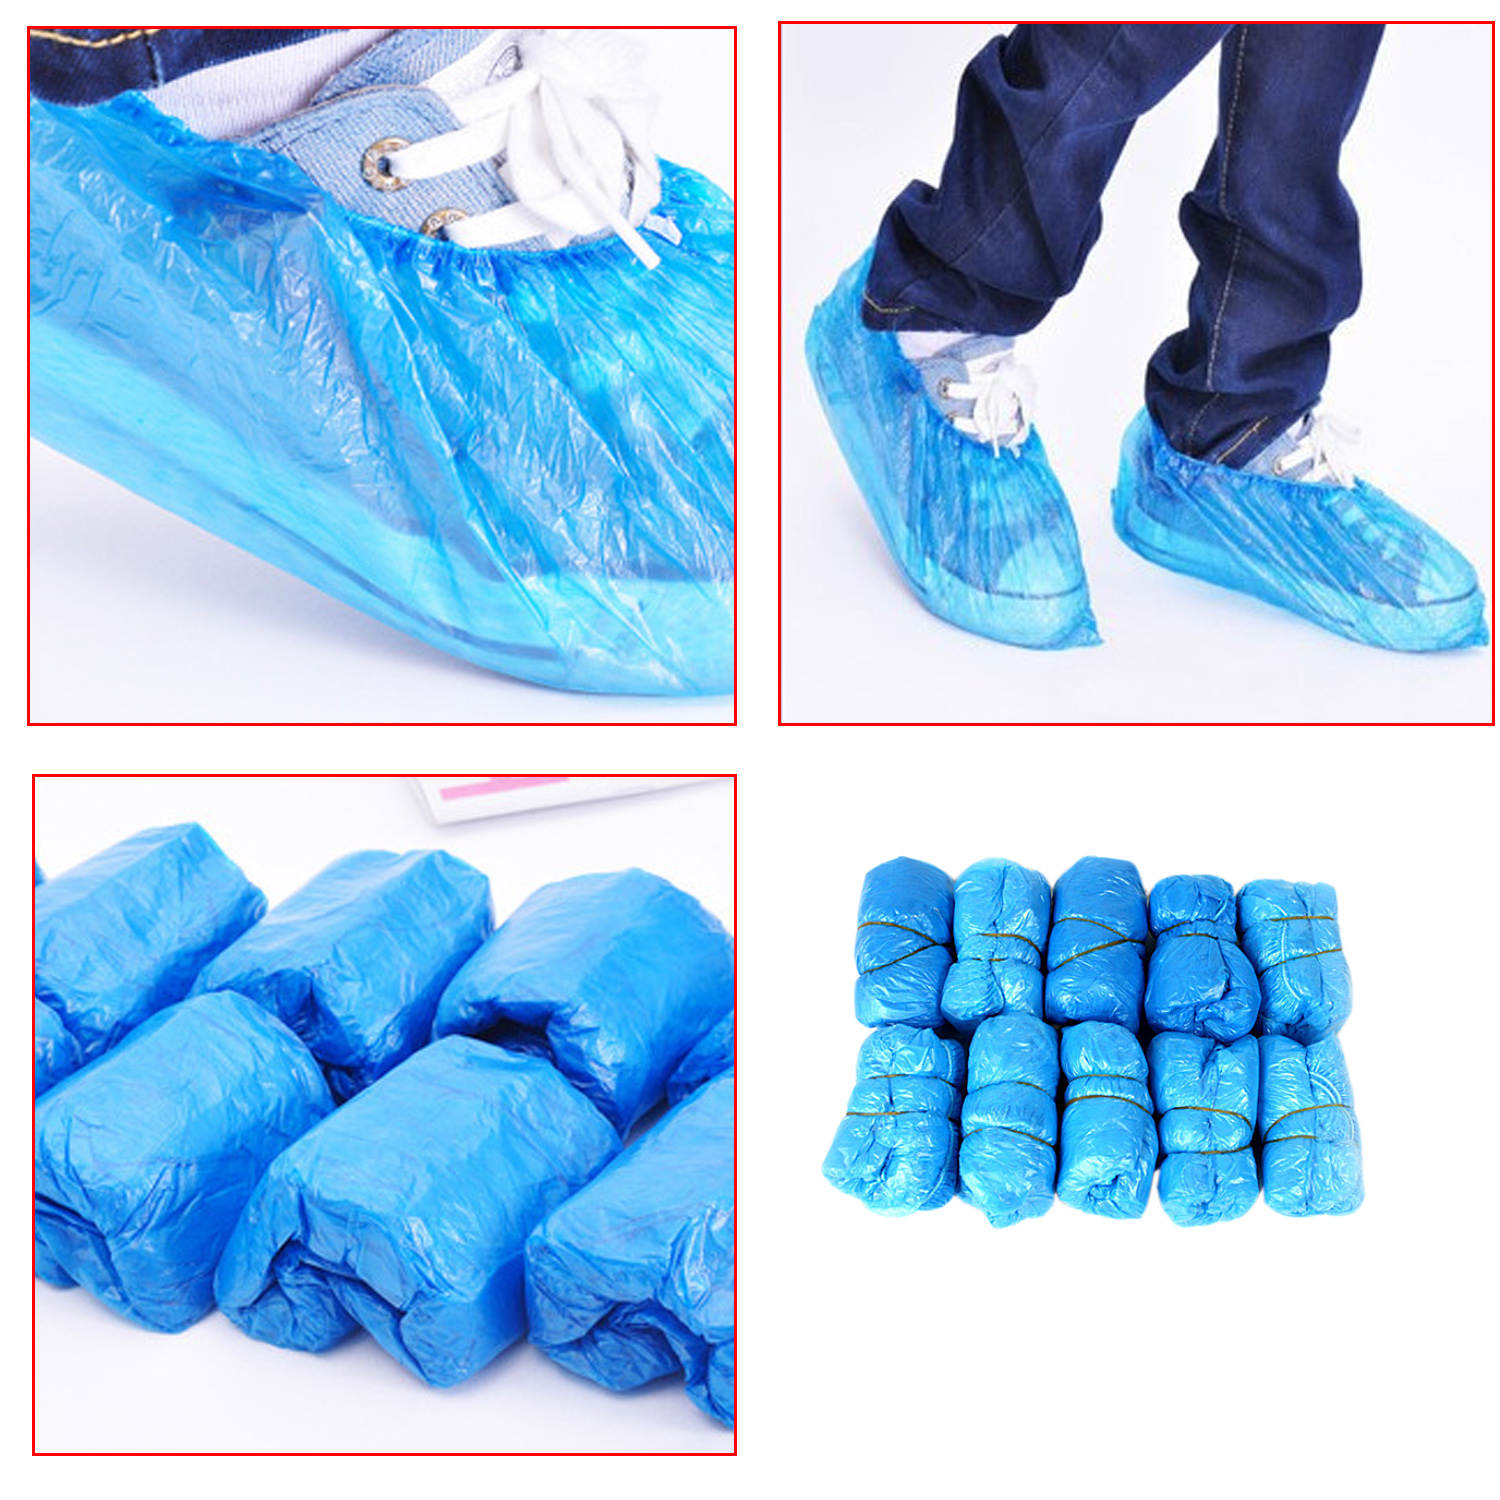 Behokic Waterproof Shoes Bag Practical Storage Retail Disposable PE Plastic Protective Shoe Covers Carpet Cleaning Overshoe